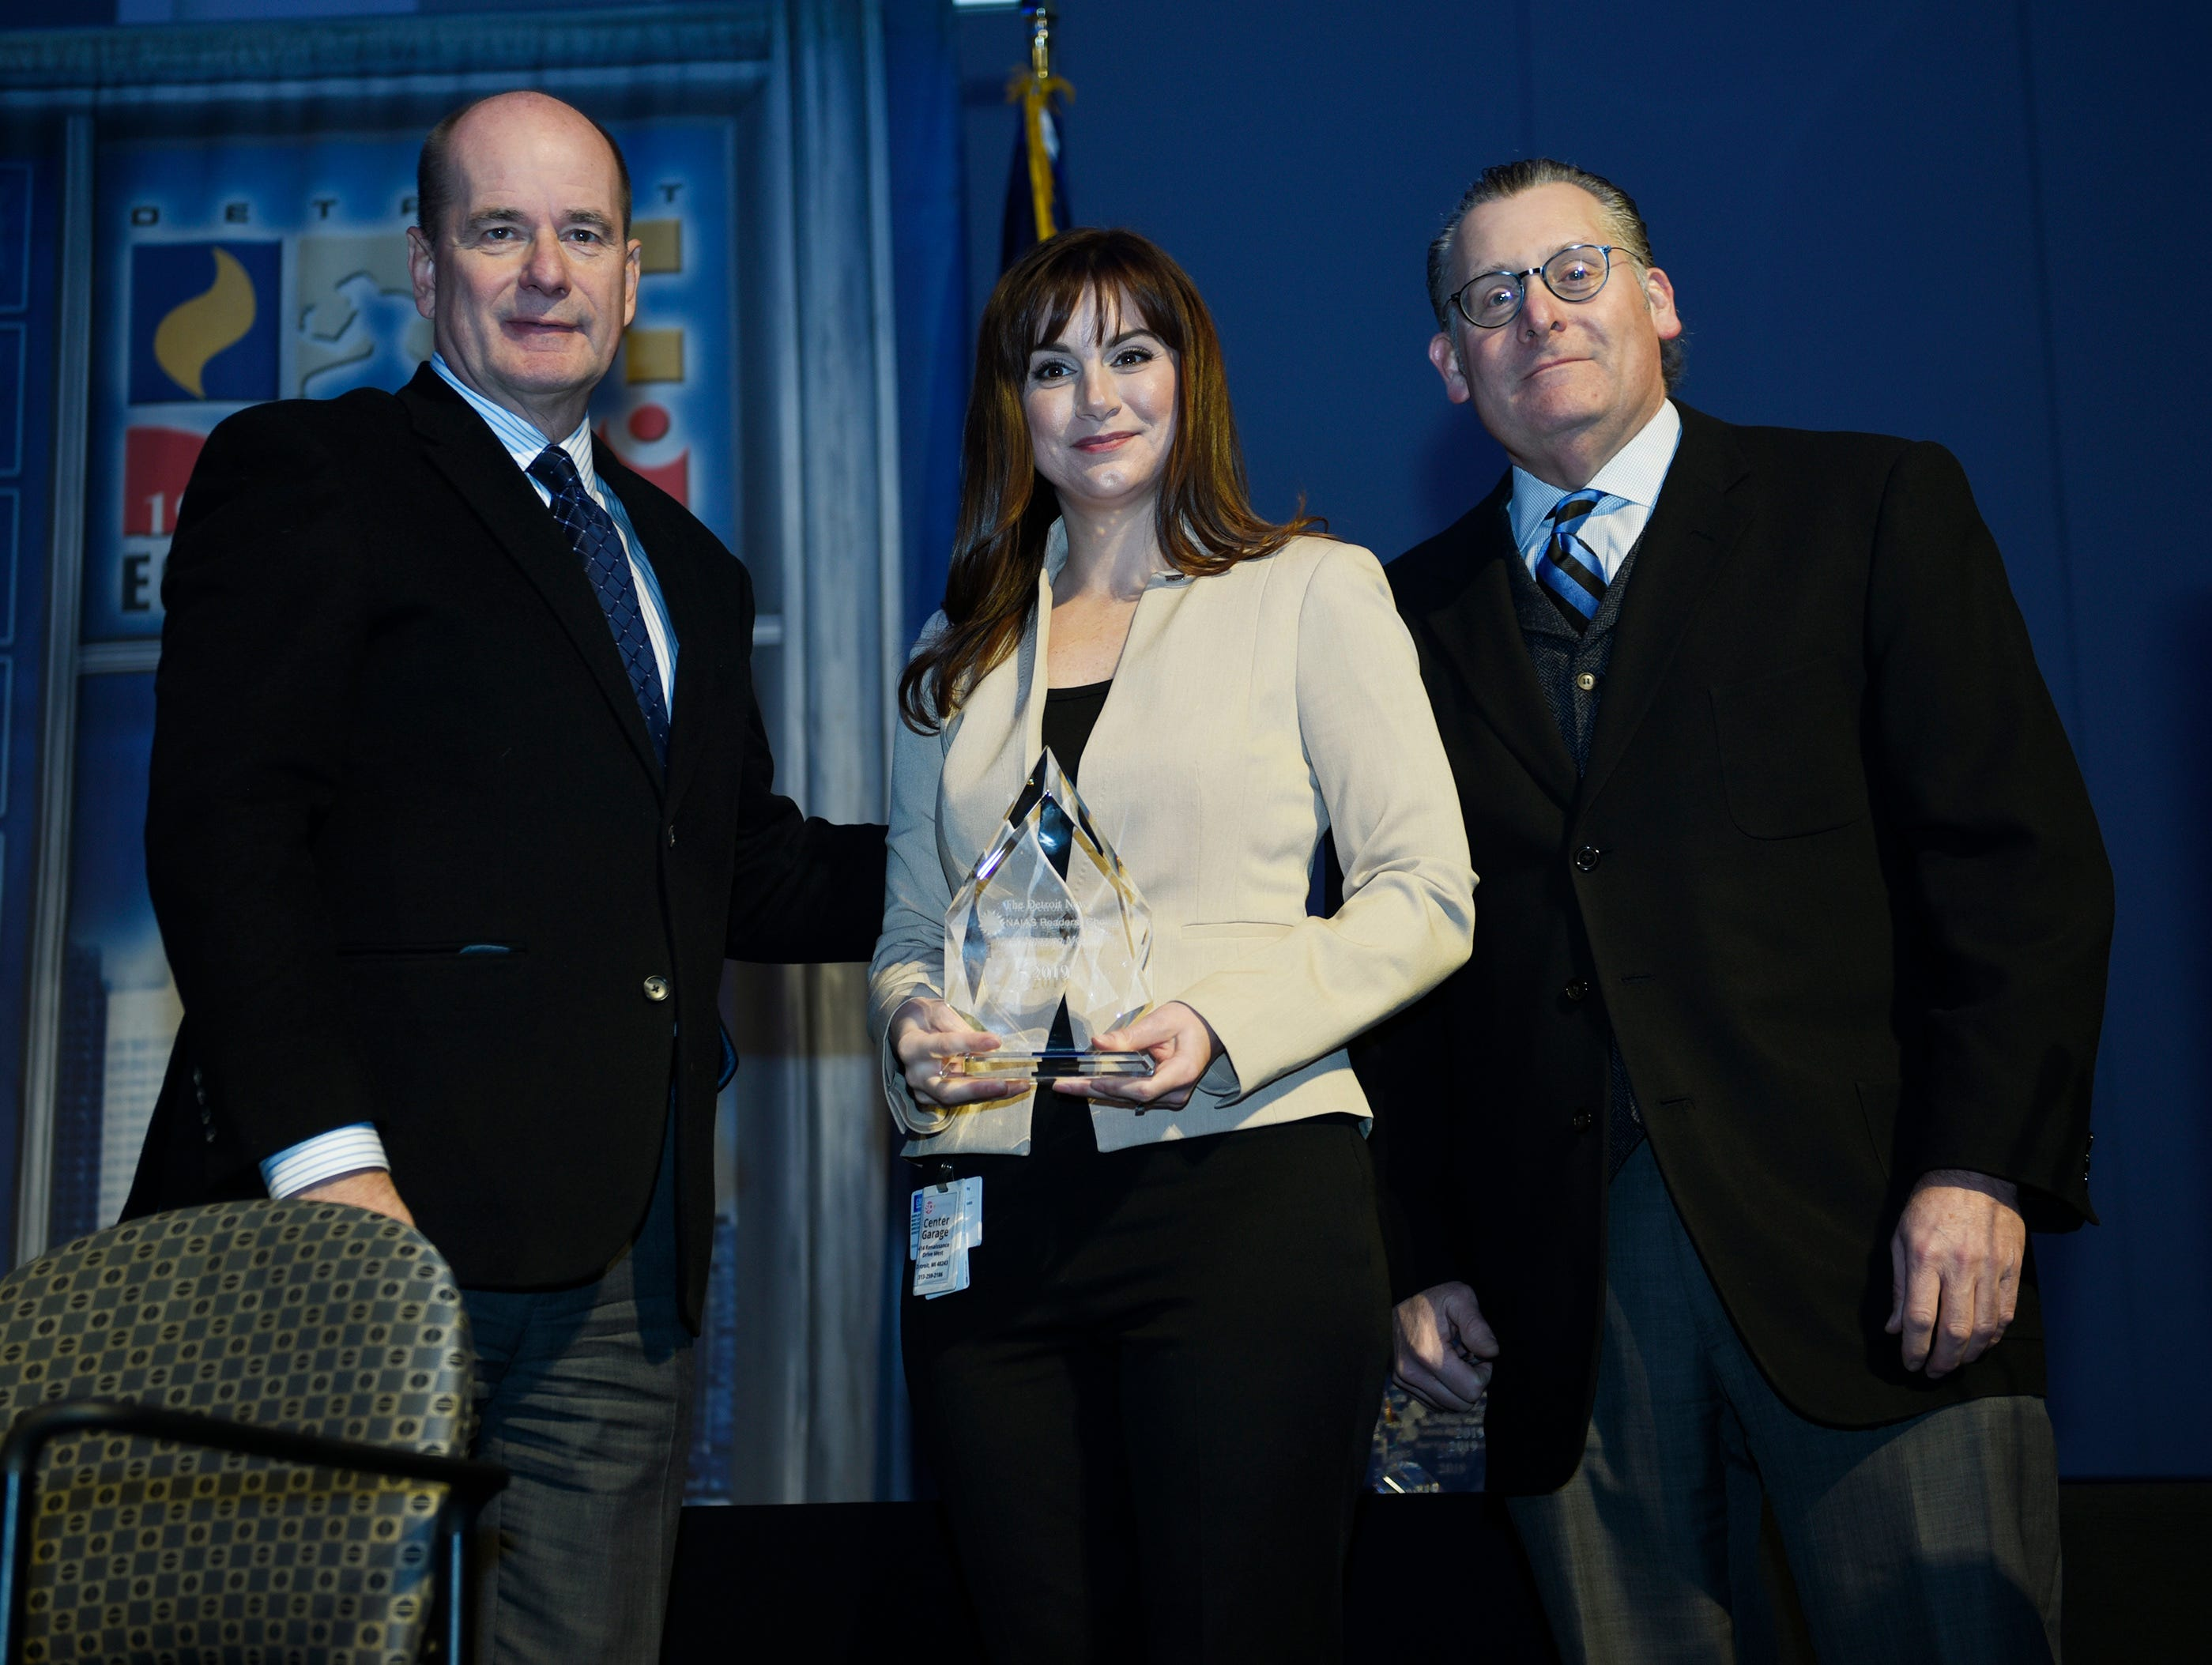 Tara Kuhnen of Cadillac accepts her award for Most Amazing Mobility: Cadillac CT6 from Detroit News Editorial Page Editor Nolan Finley, left, and Business Columnist Daniel Howes during the Peoples' Choice award ceremony at Cobo Center.